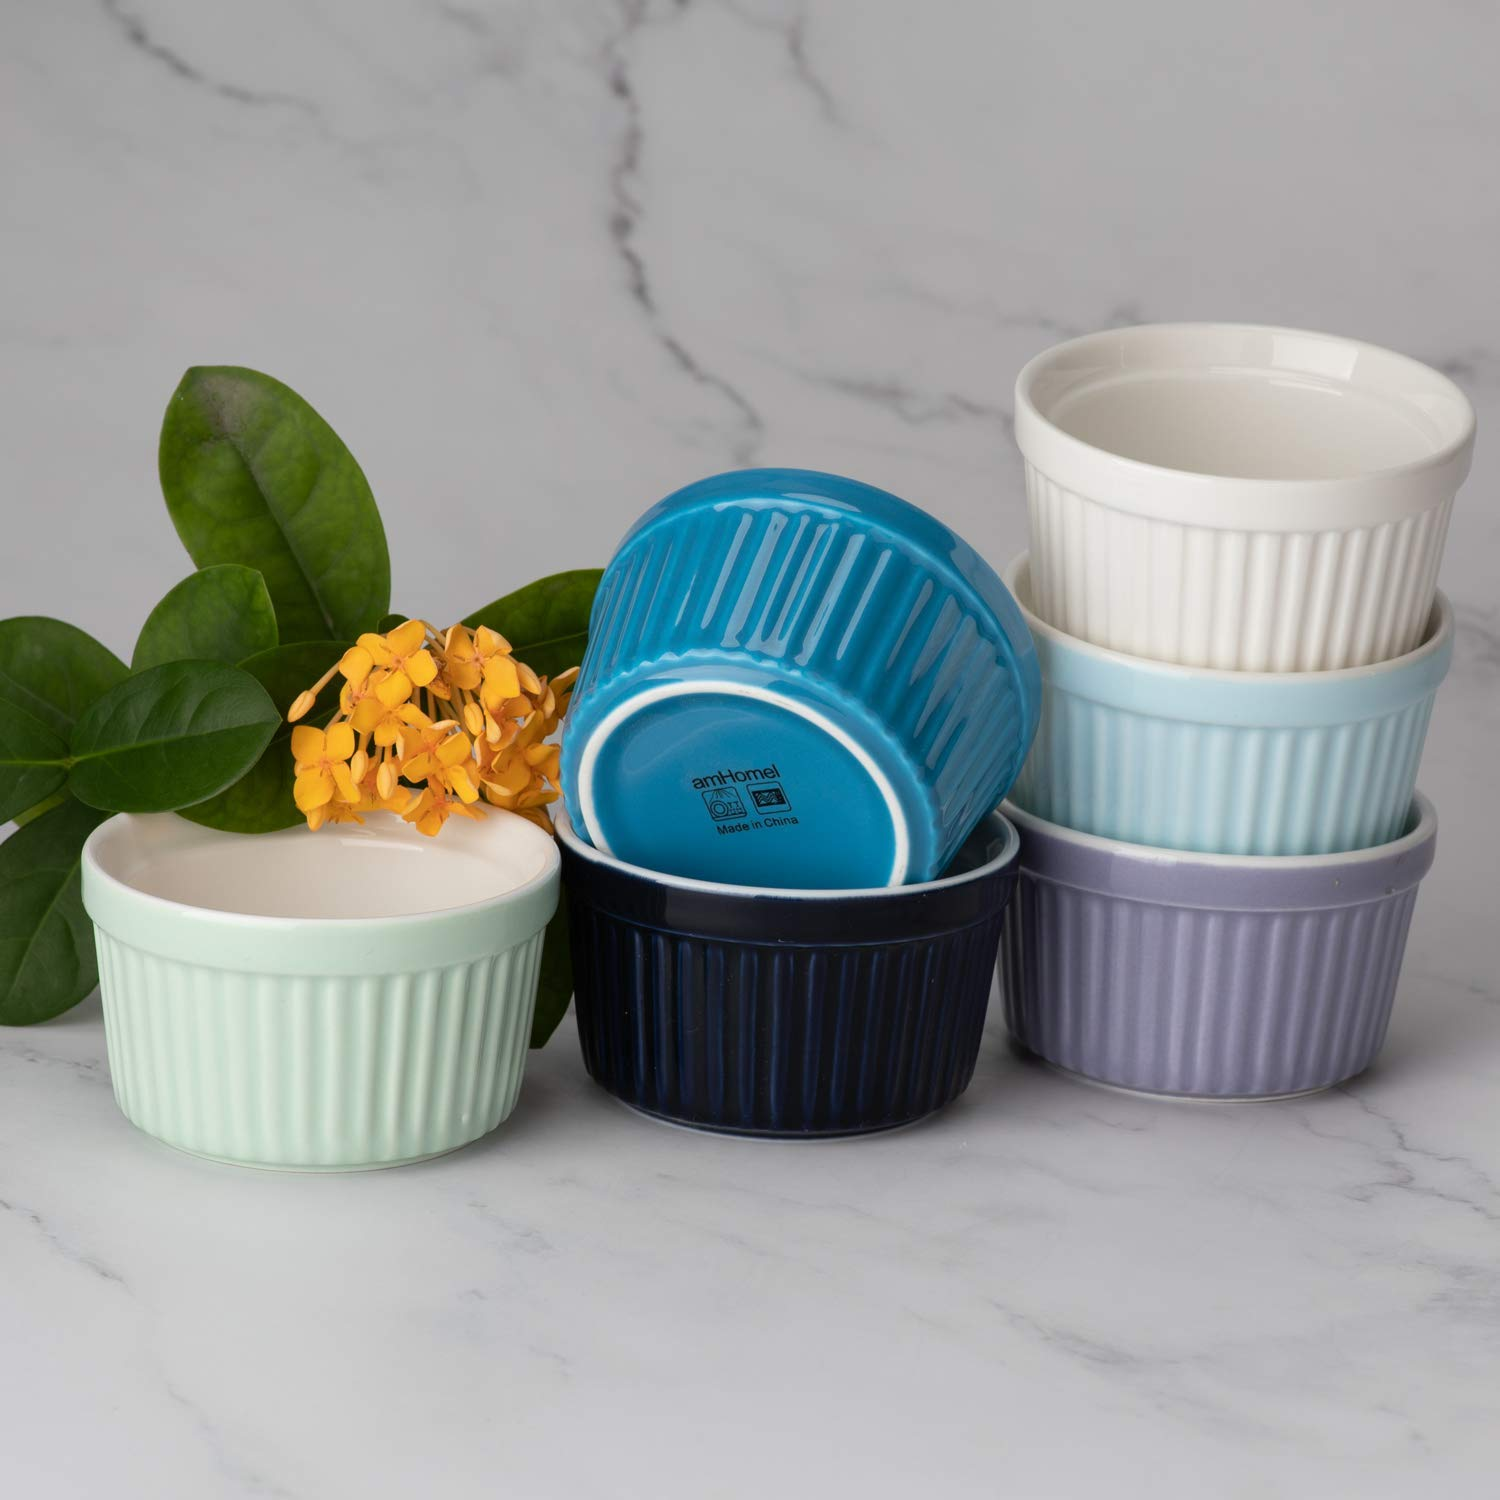 Set of 6 Cold Assorted Color 8 OZ Baking Cups Creme Brulee and Ice Cream amHomel Porcelain Souffle Dishes Ramekins Bakeware Set